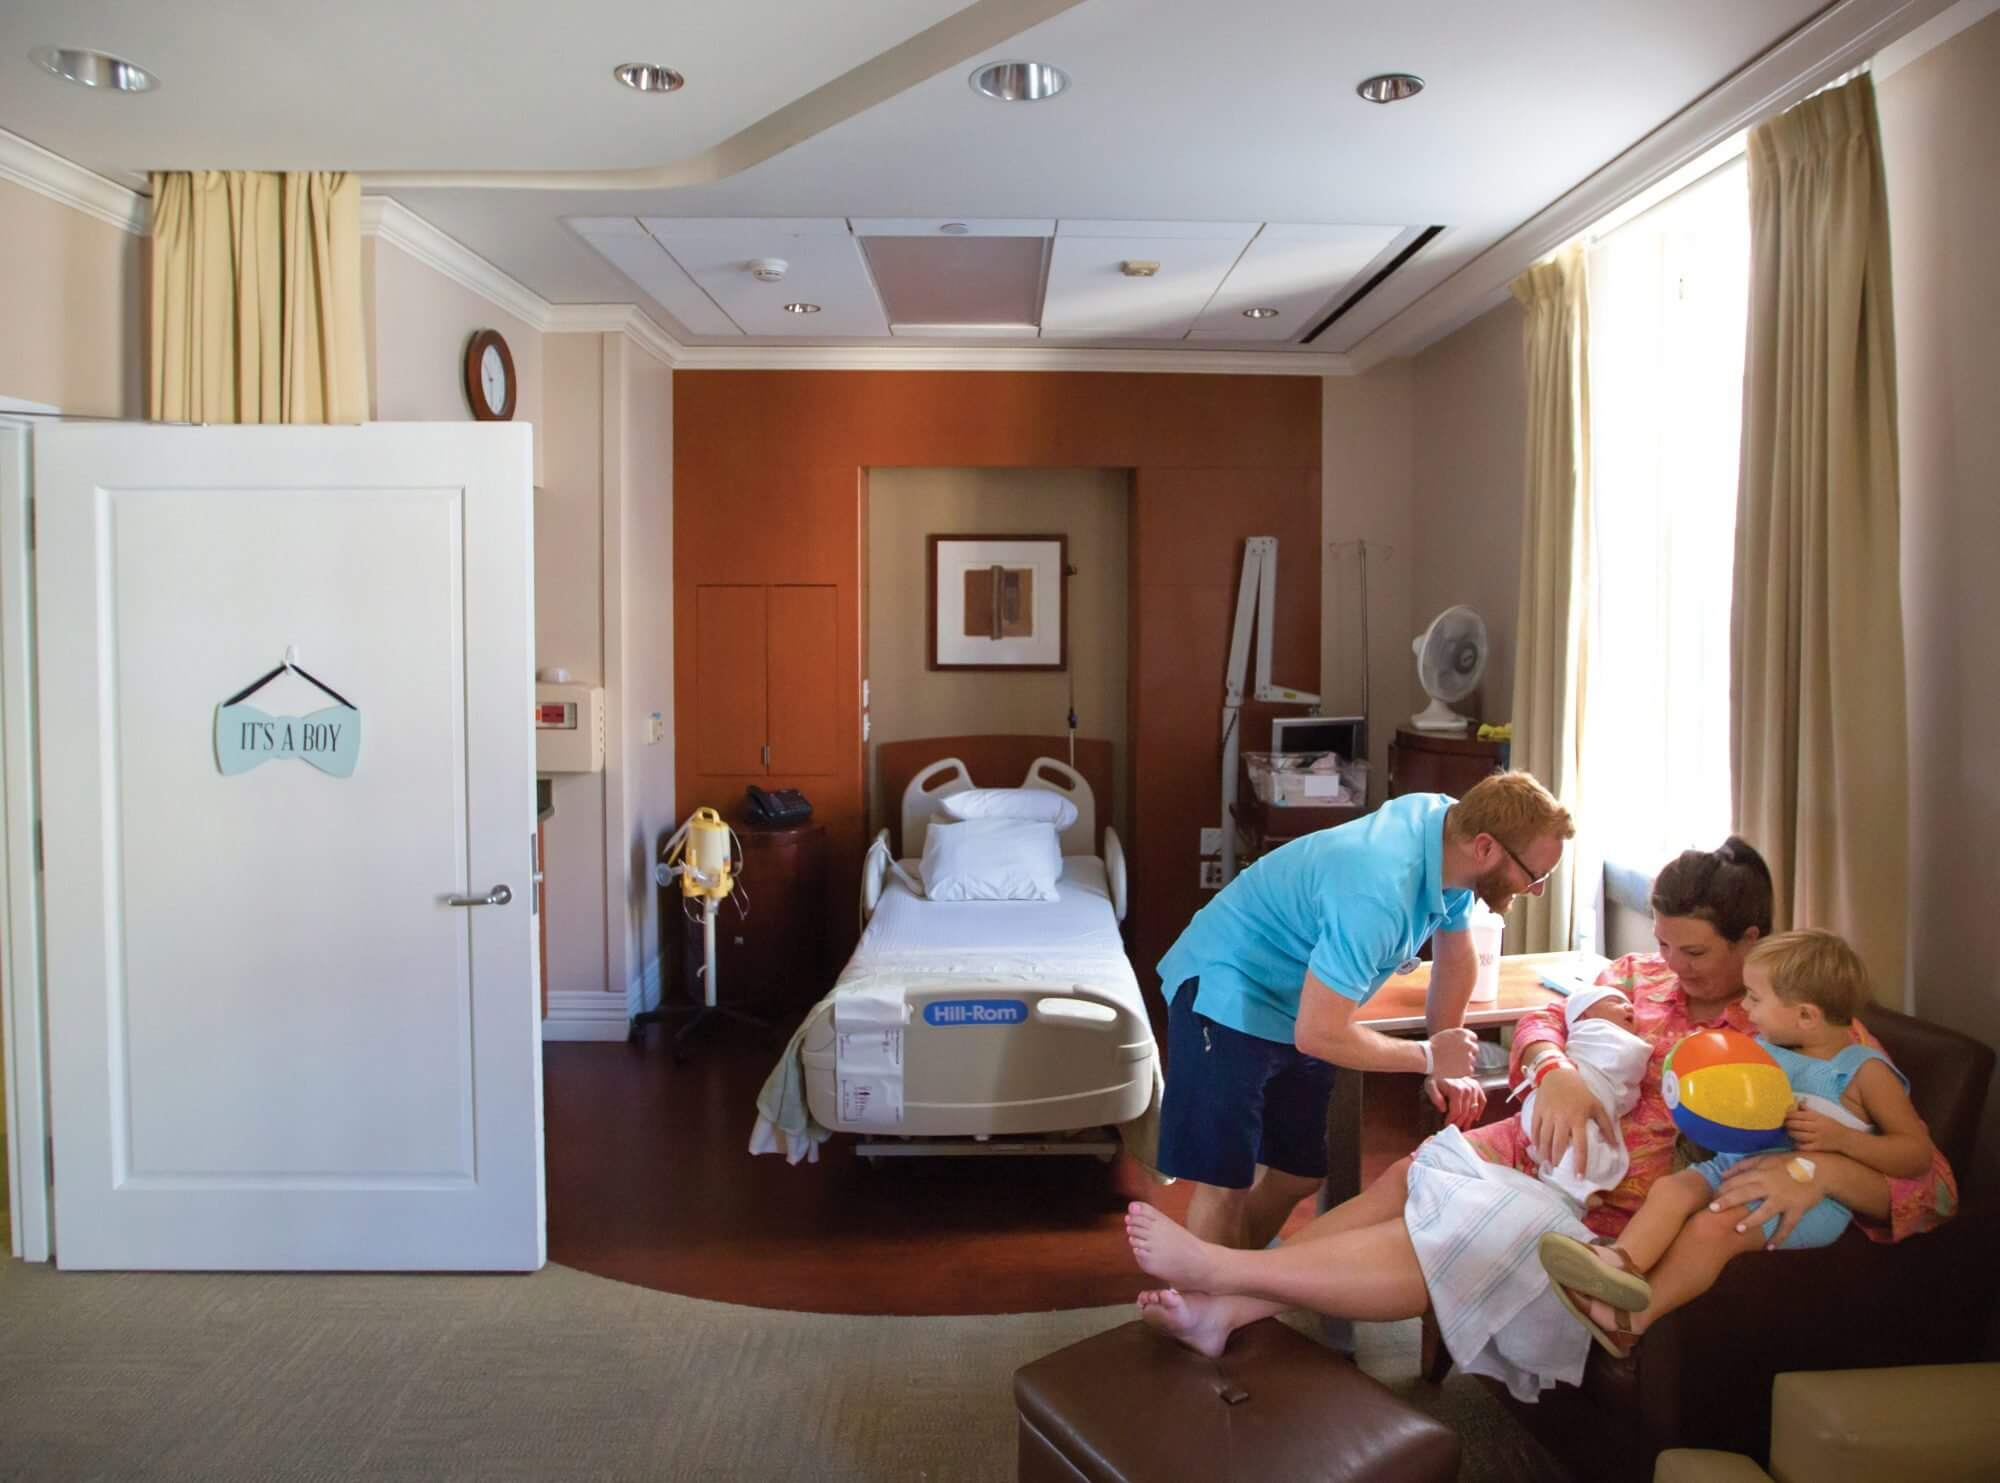 Hospital suites across the Texas Medical Center offer patients a